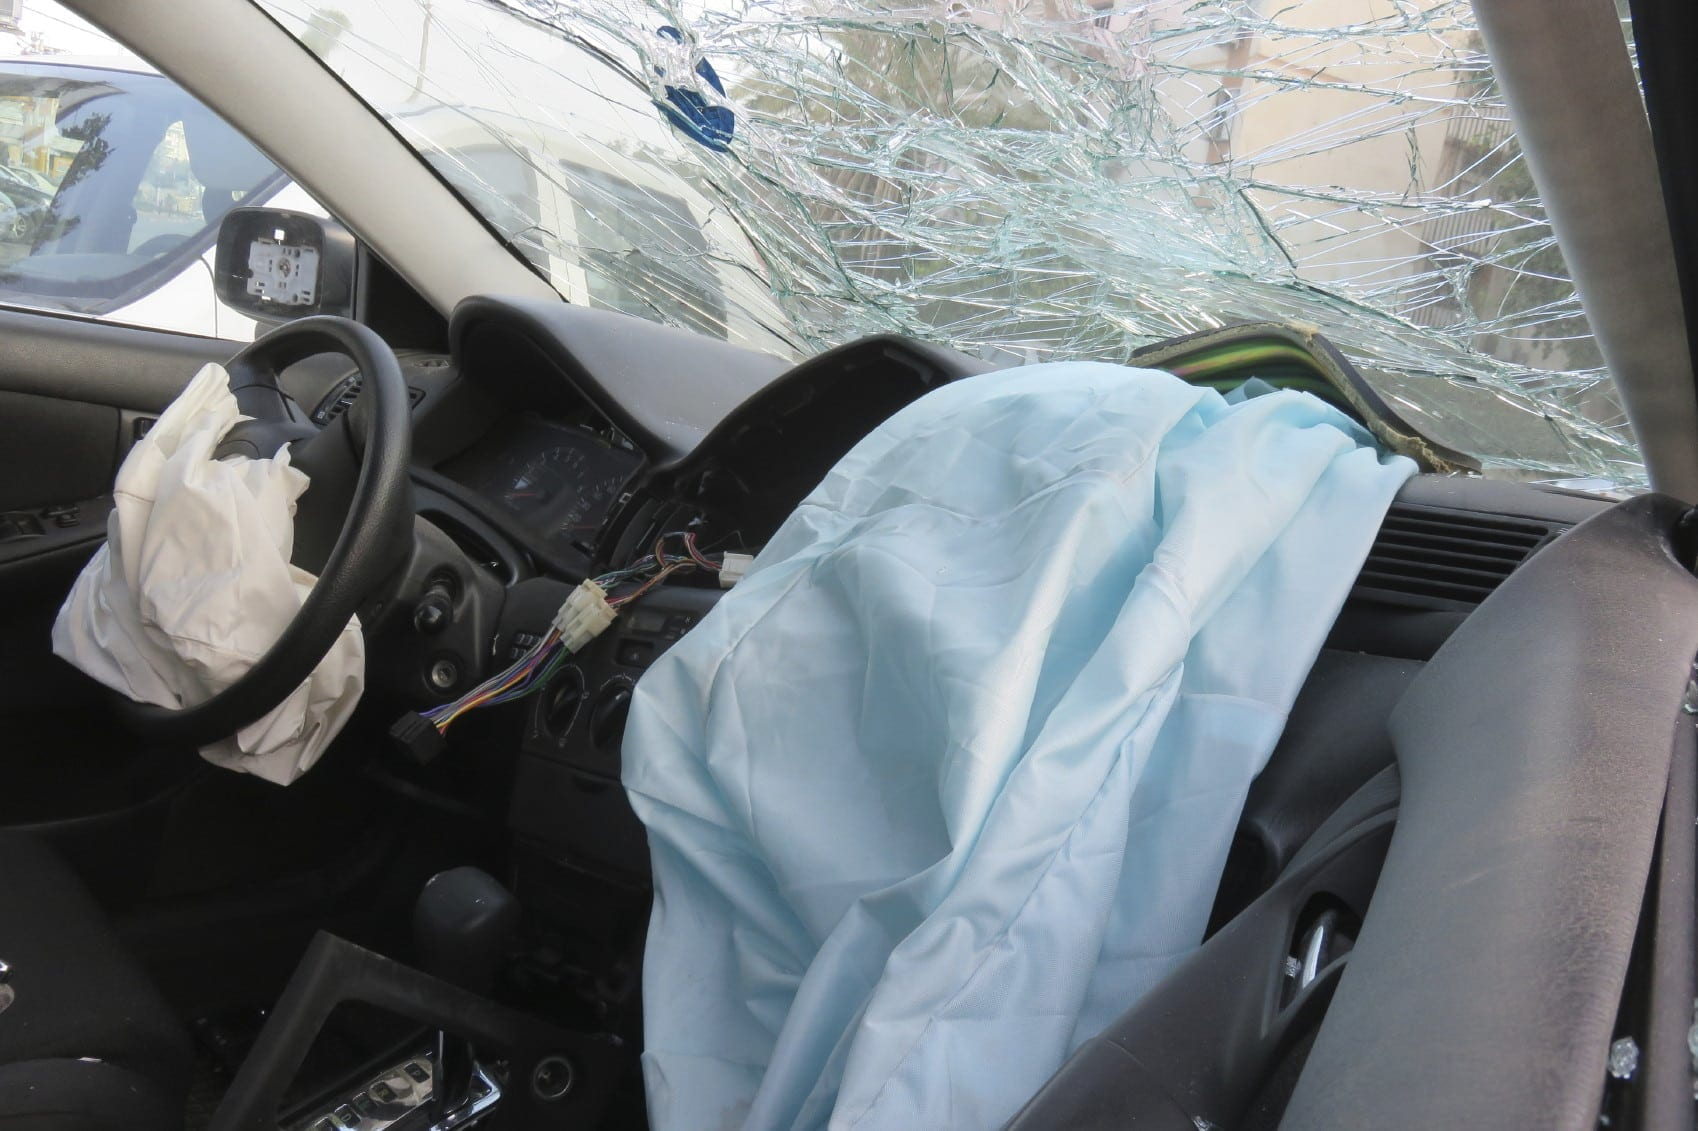 Broken Windshield After Car Accident Stock Photo